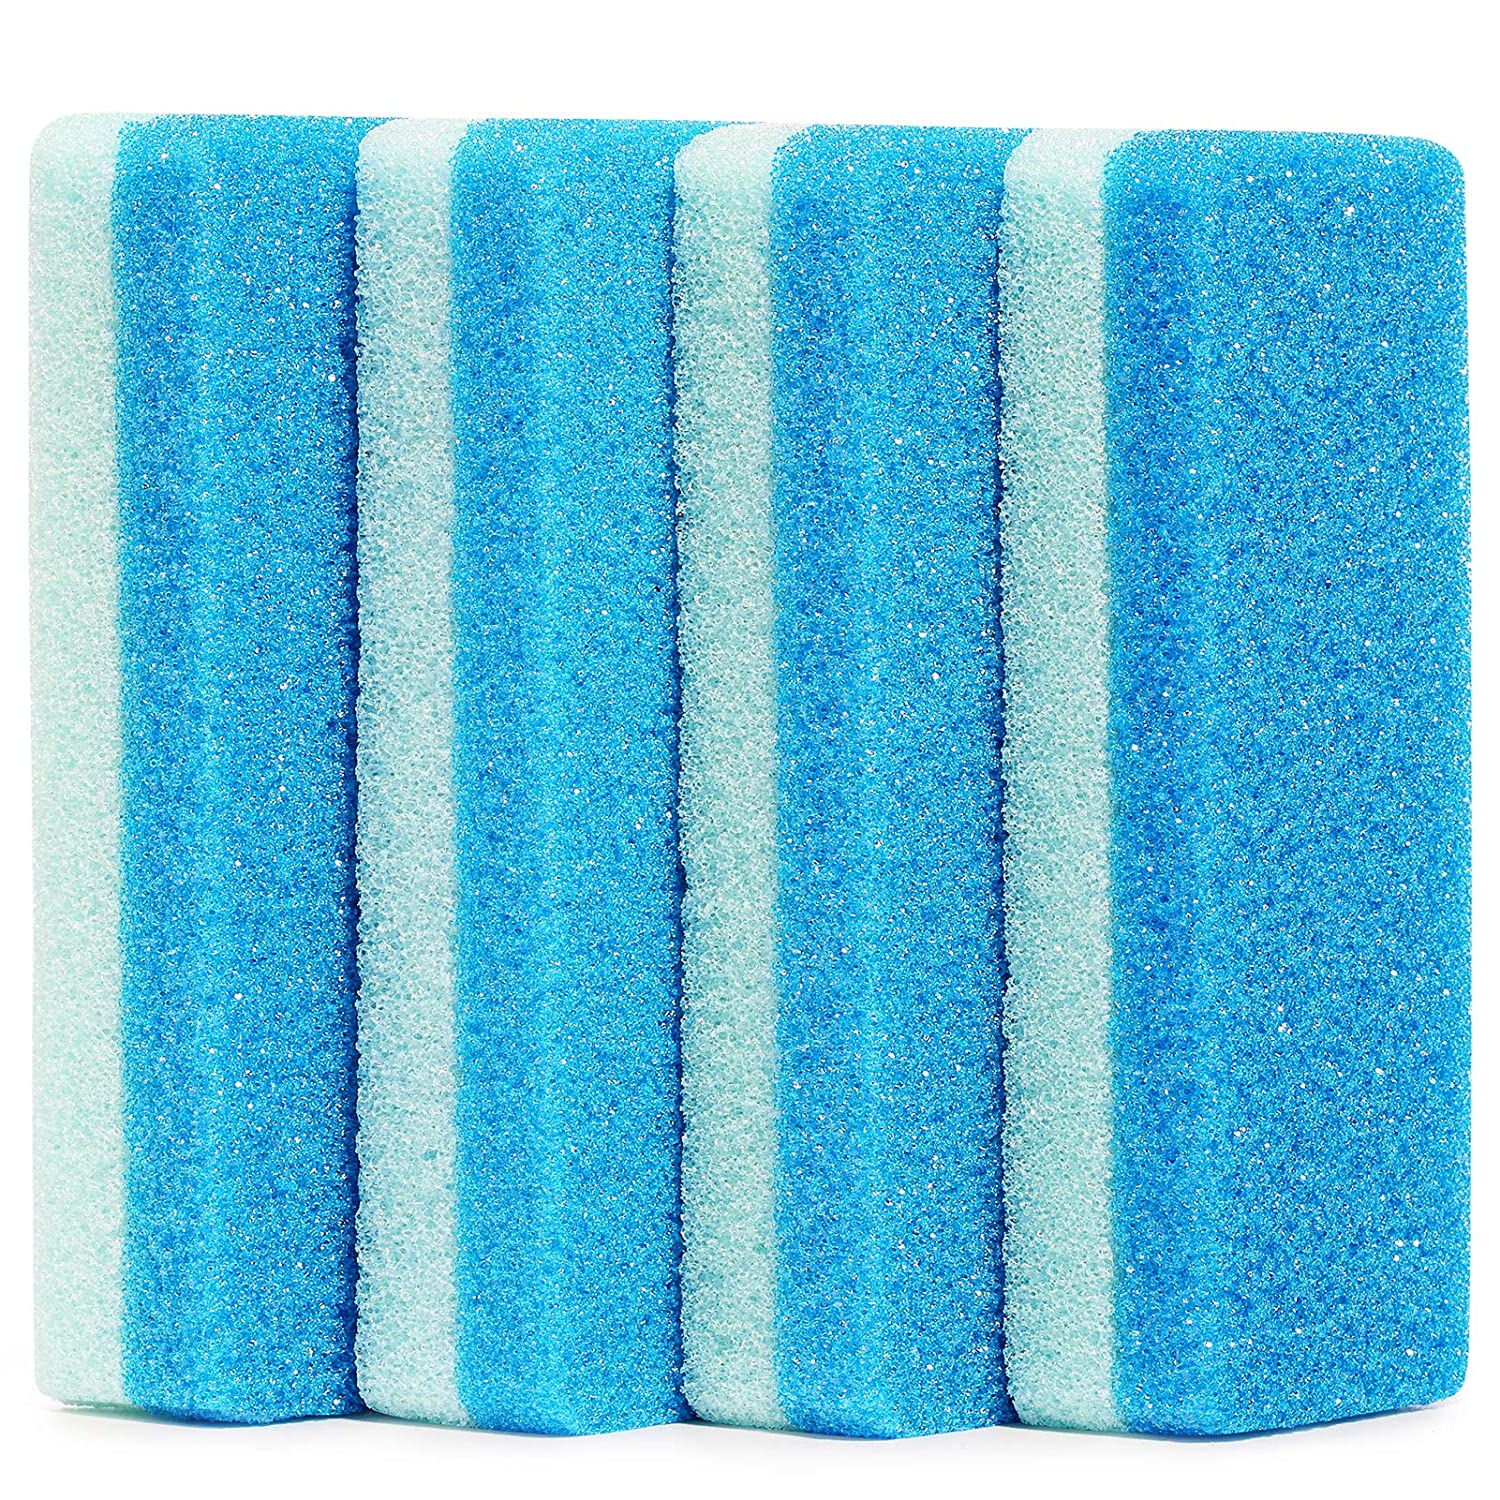 4 PCS Gift Packaged Foot Pumice Stone Scrubber for Hard Skin, Heavy Callused Feet, Dead Skin, 2 in 1 Pumice Stone for Feet, Heels, Hands and Body: Beauty